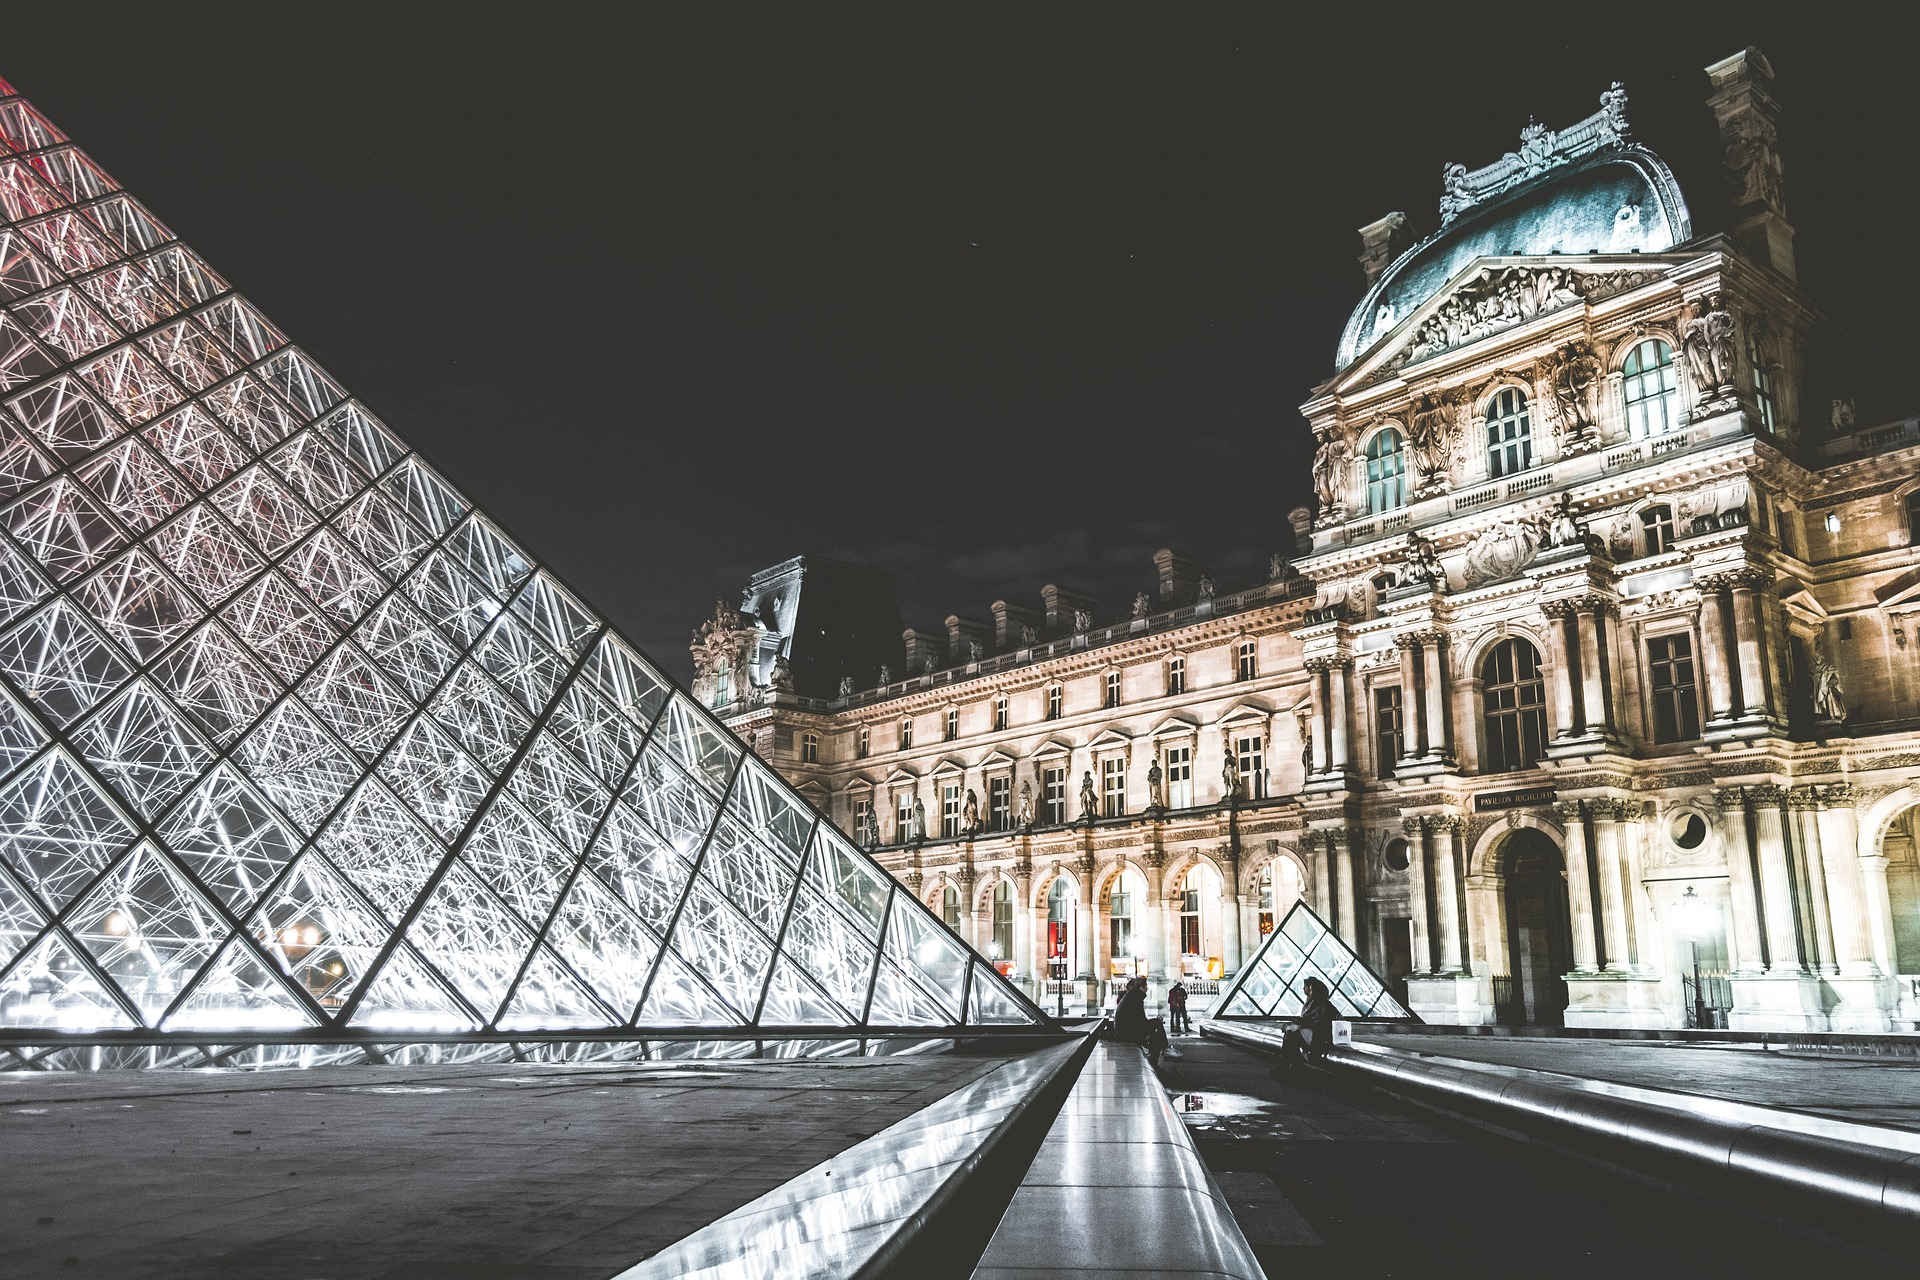 The Louvre is one of Paris' most iconic attractions